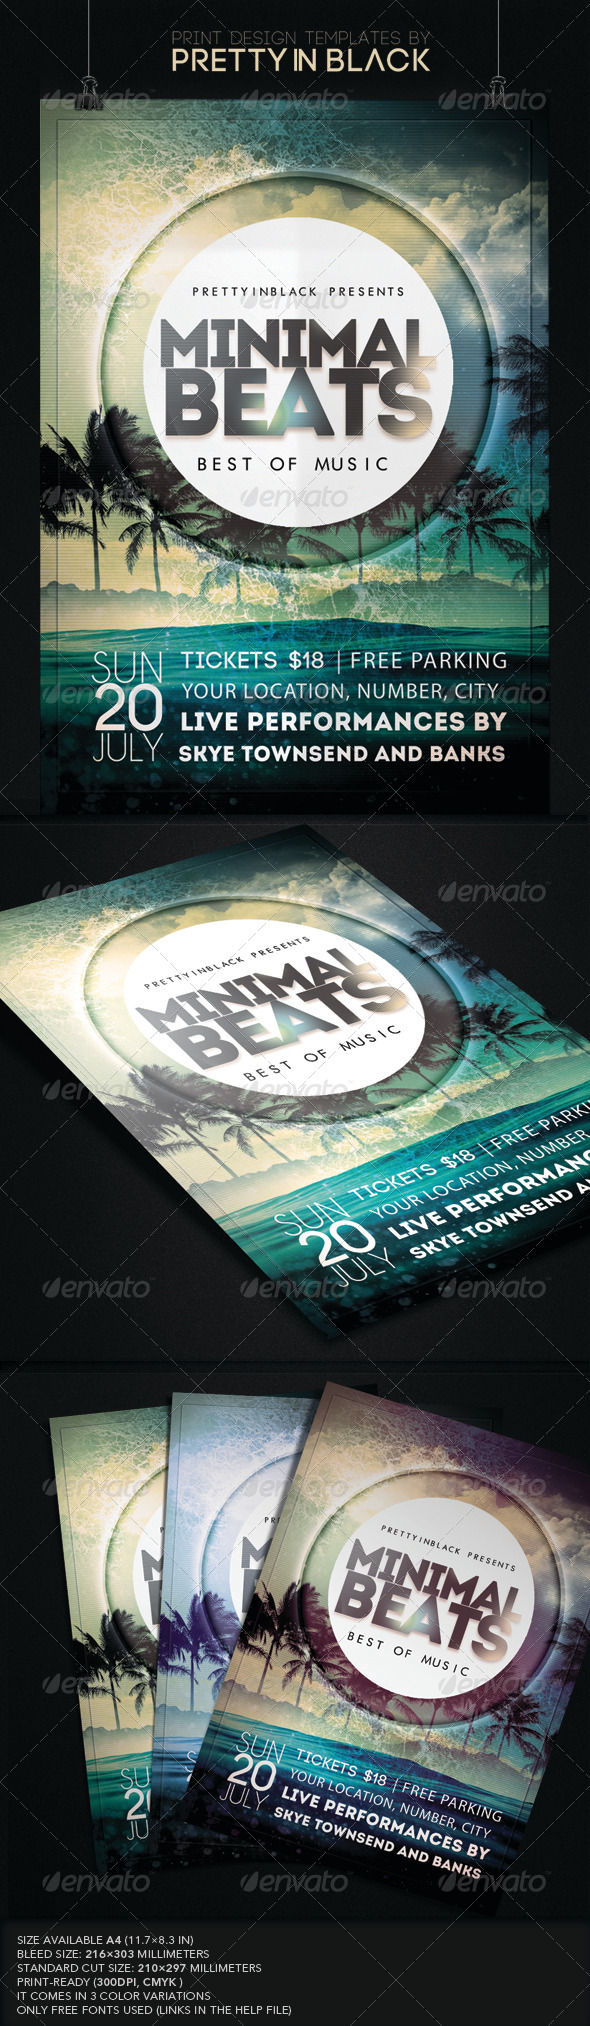 GraphicRiver Minimal Beats Flyer 7901581